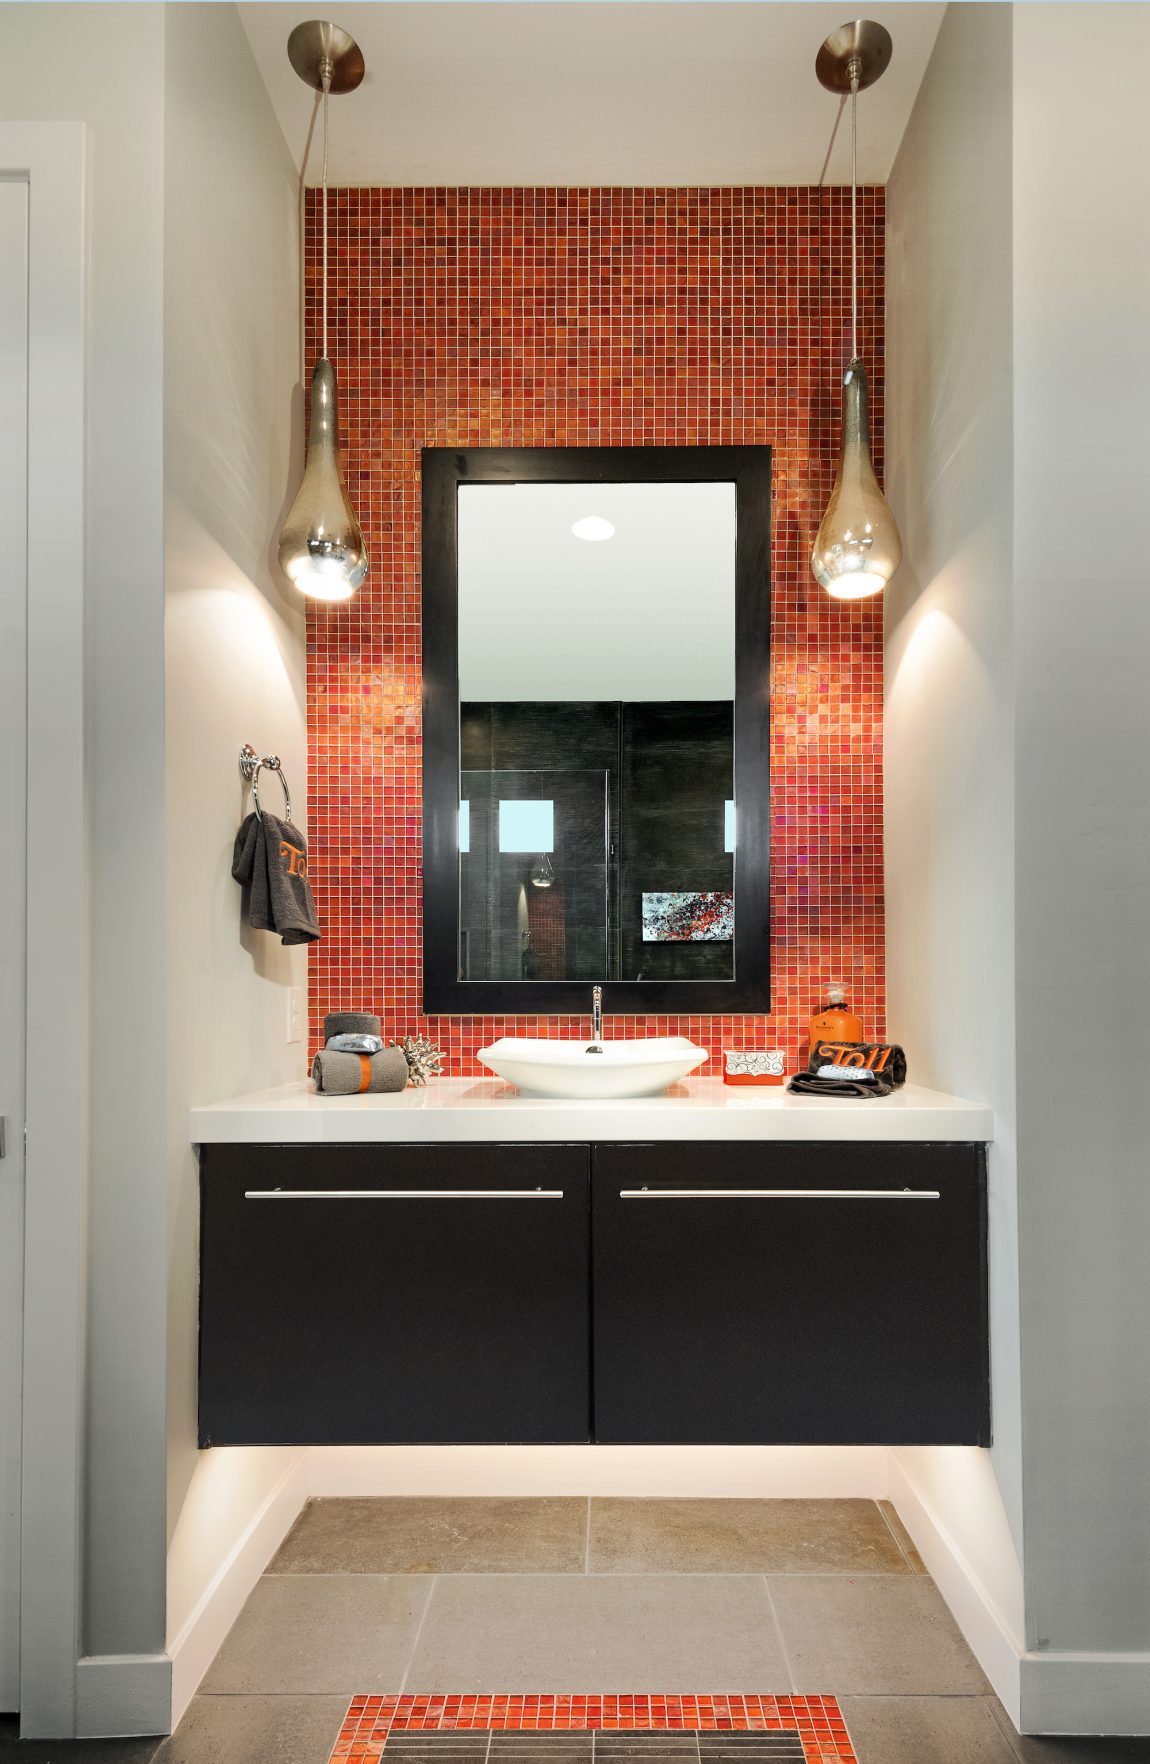 Small bathroom with an orange colored backsplash.